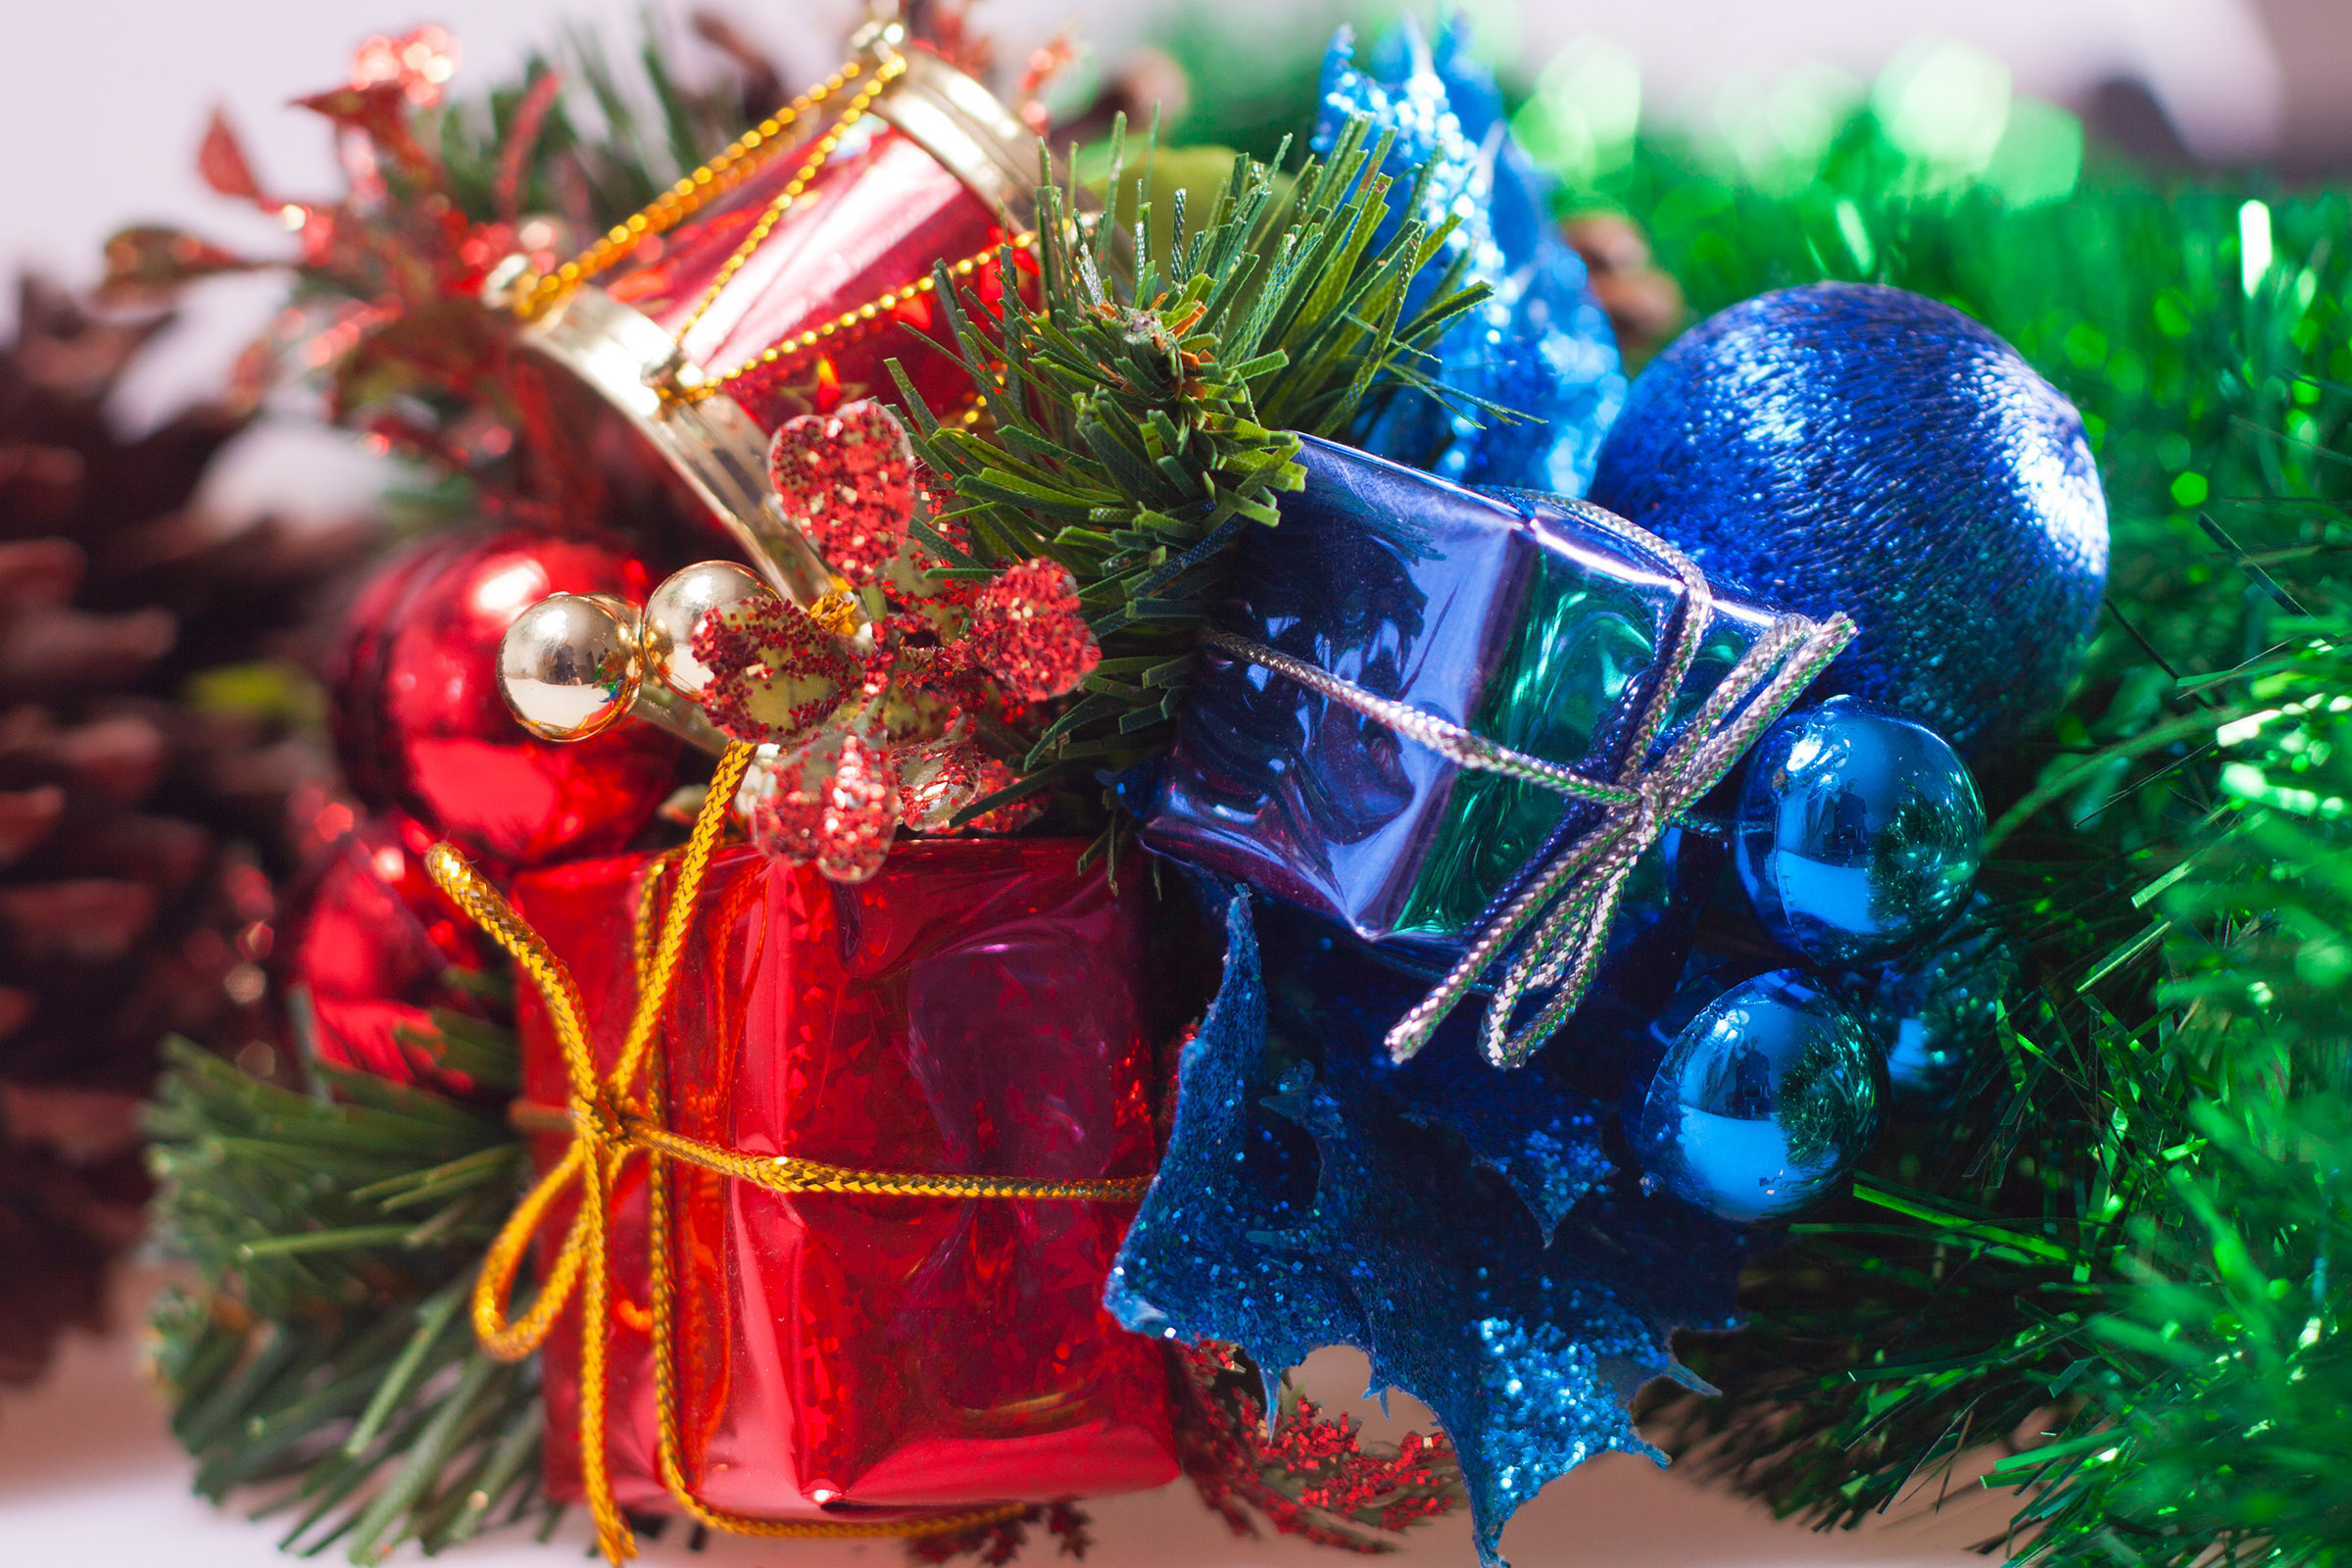 Christmas Ornaments, Ball, Holiday, Winter, Tree, HQ Photo